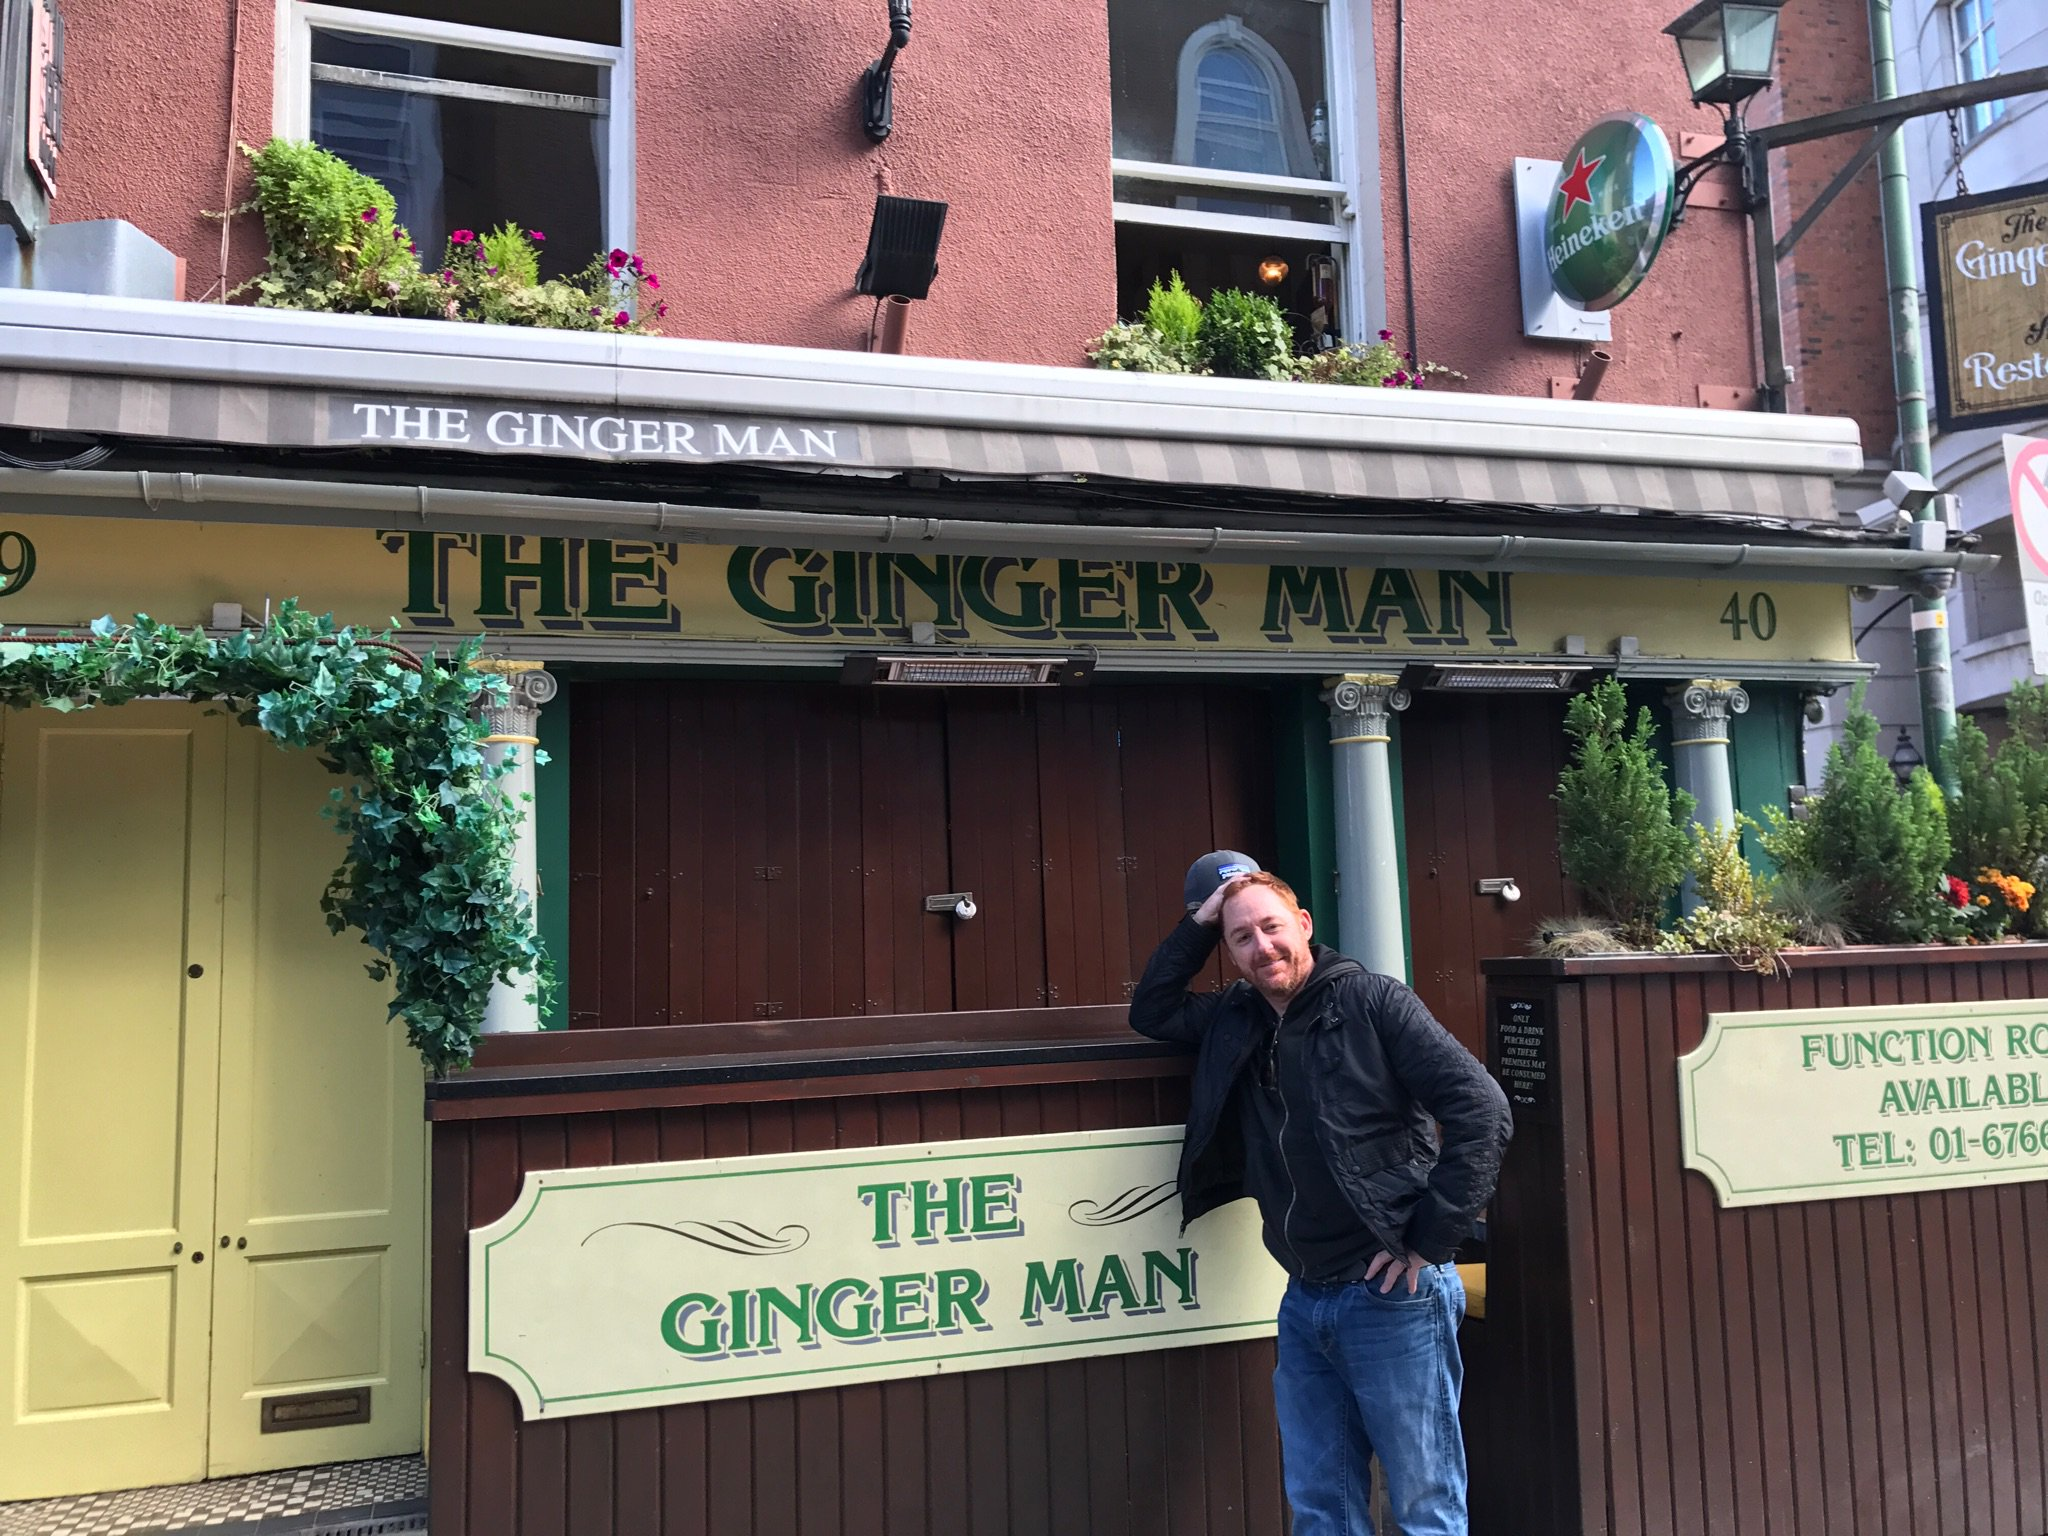 RT @ScottGrimes: Exhausted from the #igpthemusical show in Dublin. Found this pub the next morning. https://t.co/1V9DFl2Qfi